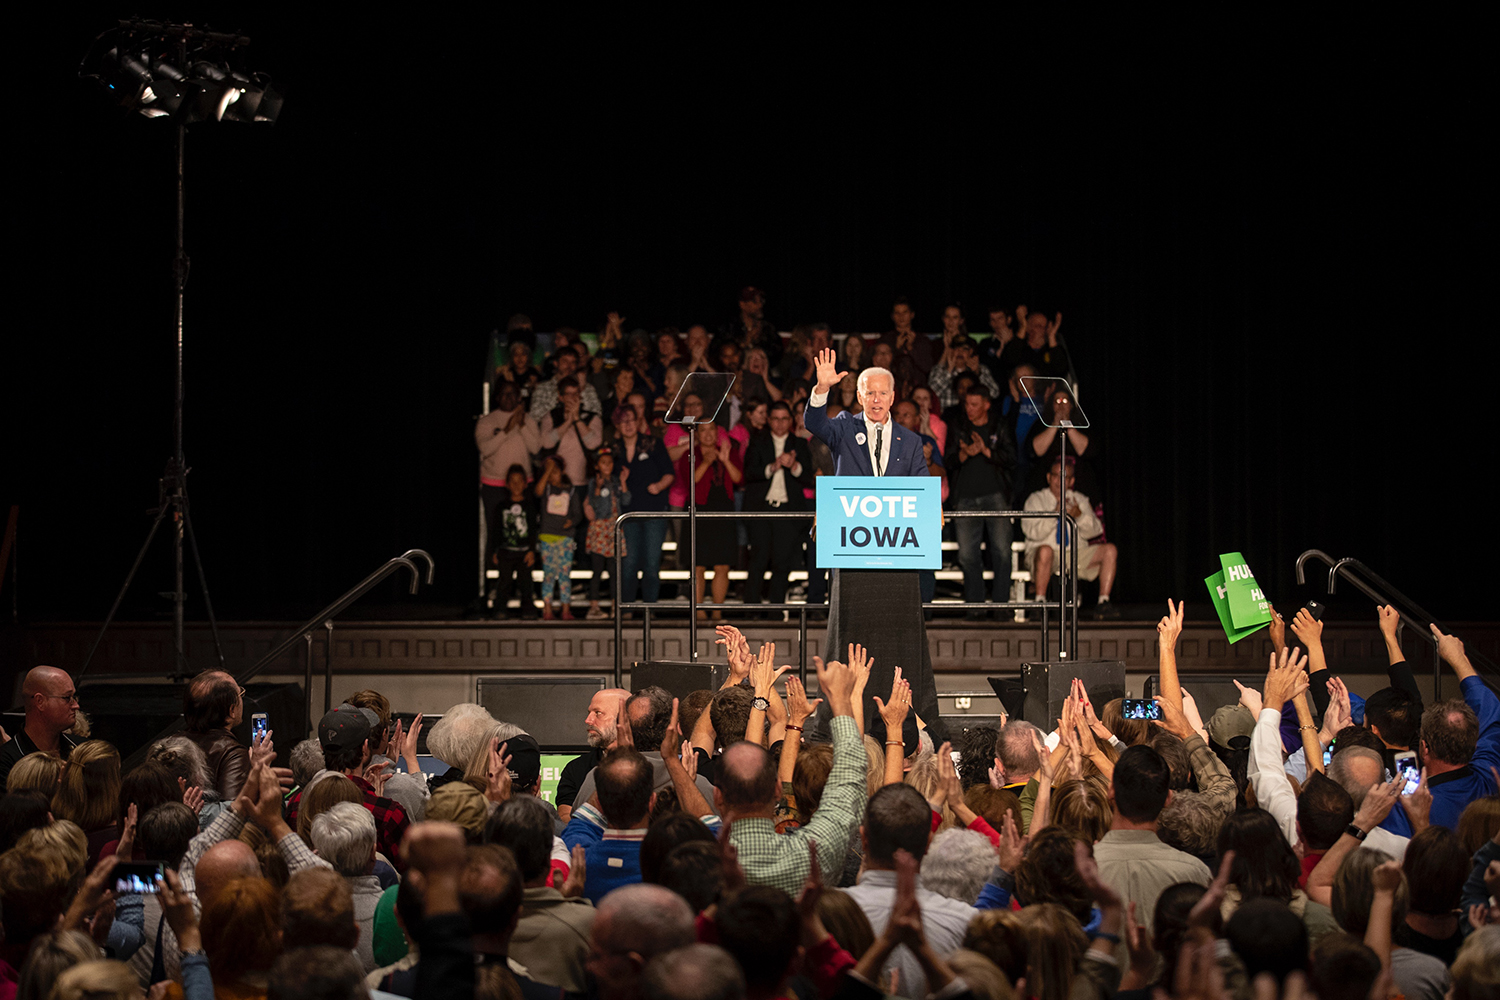 Joe Biden addresses the crowd during the Cedar Rapids Early Vote Rally at the Veterans Memorial Building on Tuesday. The event also featured speeches by 1st Congressional District Democratic candidate Abby Finkenauer and Democratic candidate for governor Fred Hubbell.